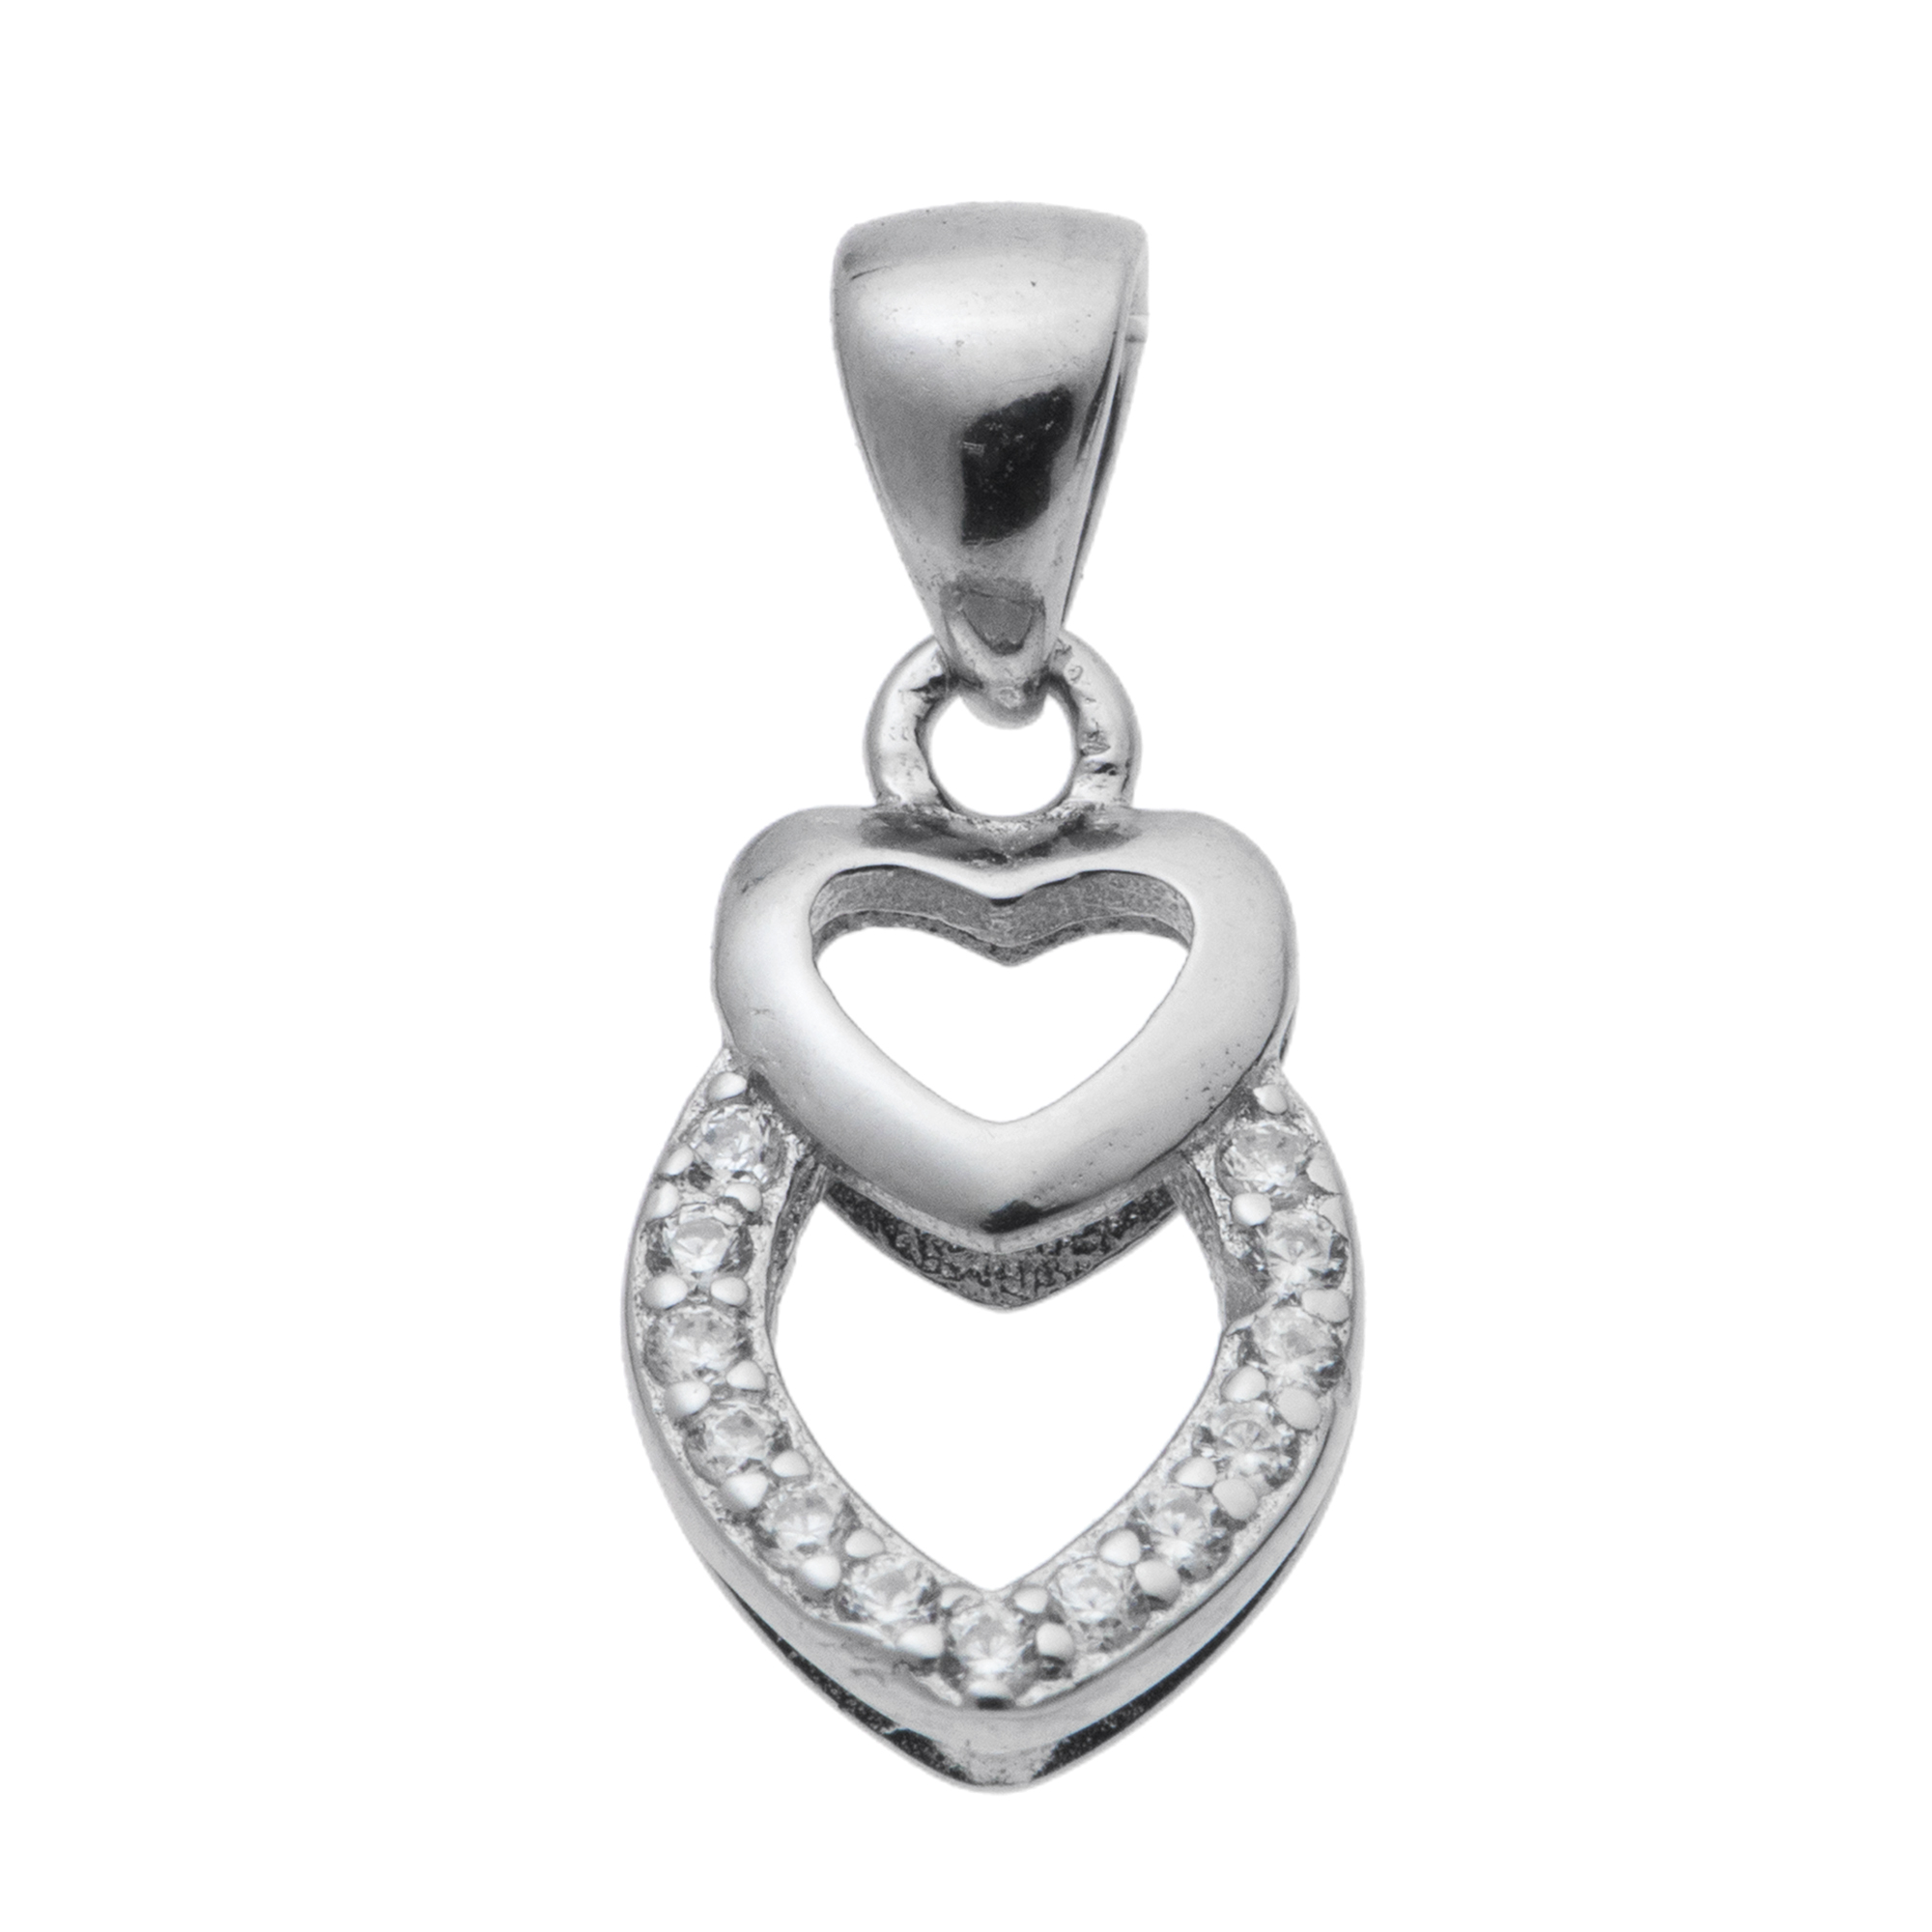 Rhodium on 925 Sterling Silver Double Love Heart CZ Pinch in Bail Pendant Connector